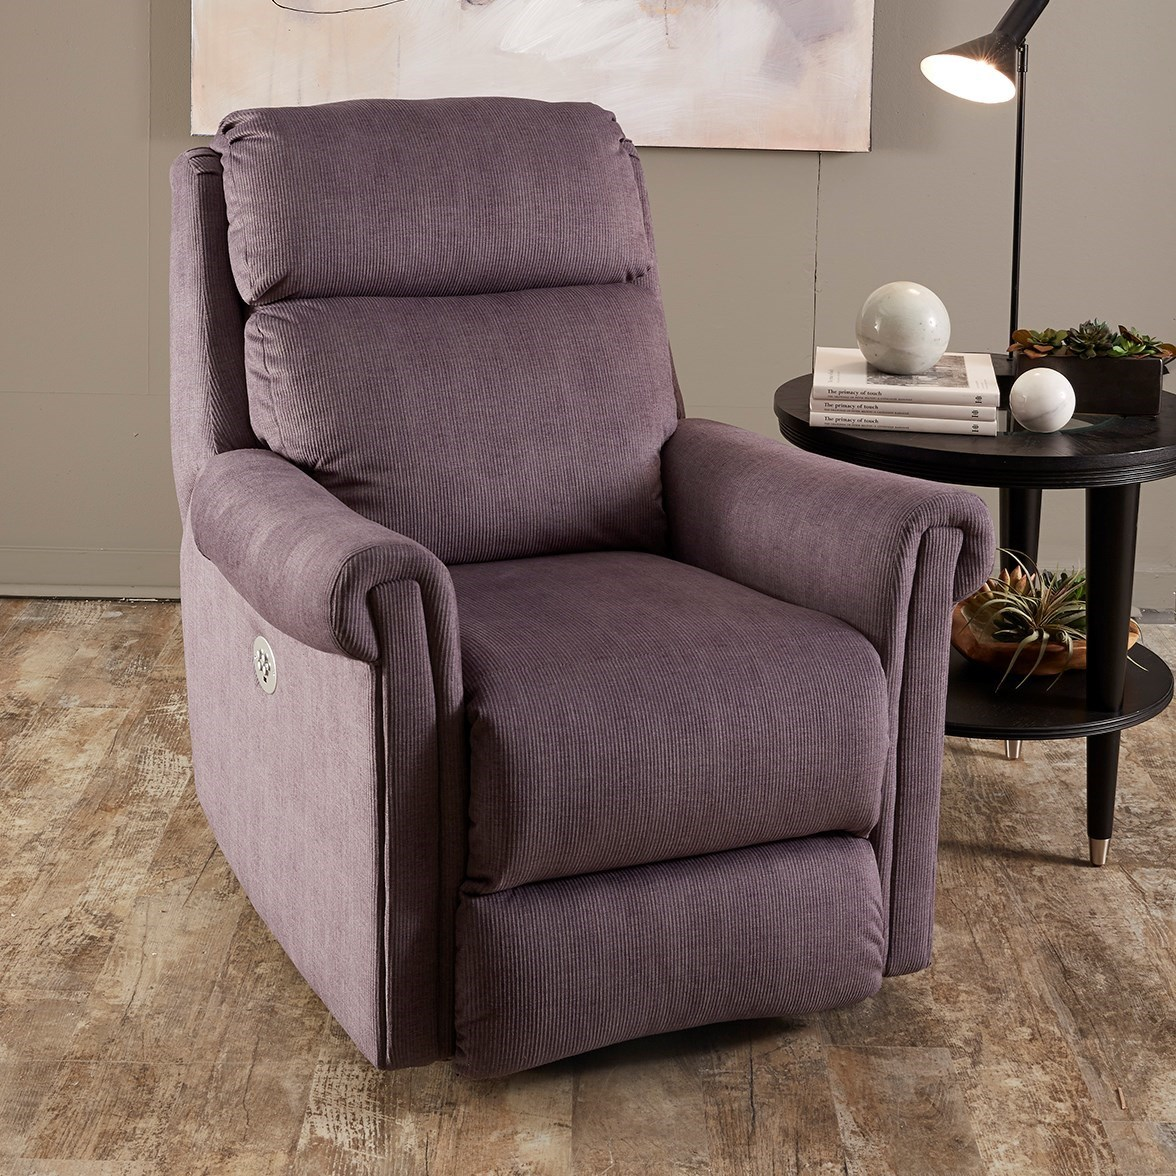 Superstar Power Rocker Recliner by Southern Motion at Value City Furniture